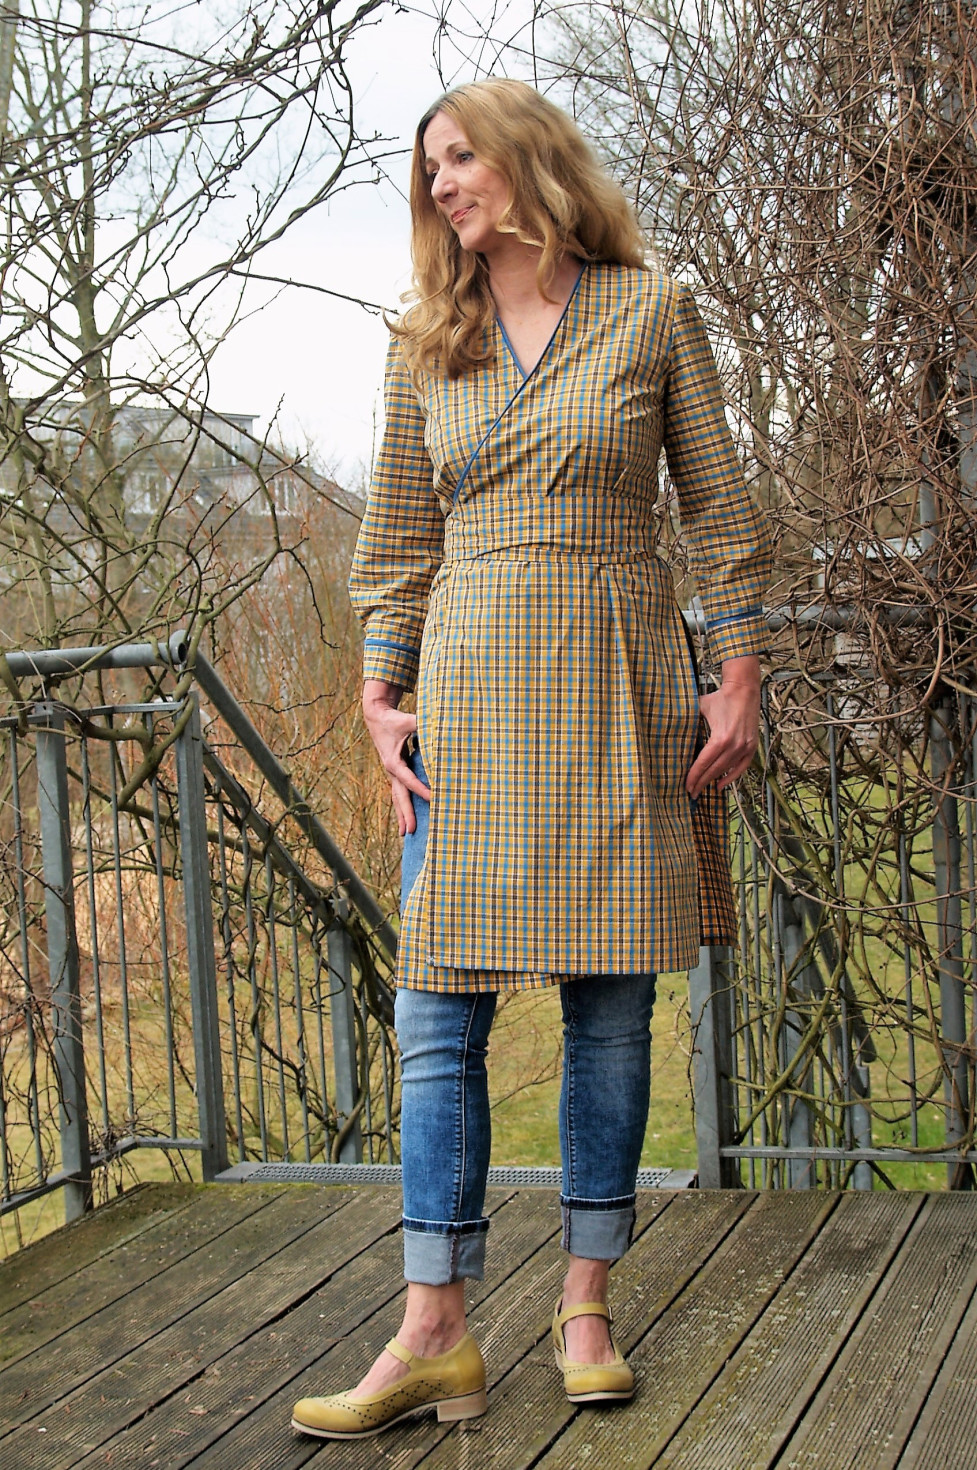 burda style Nutzerkreation Super_noah  Lange Wickelbluse, nach Burda 10/2011 Kleid 122